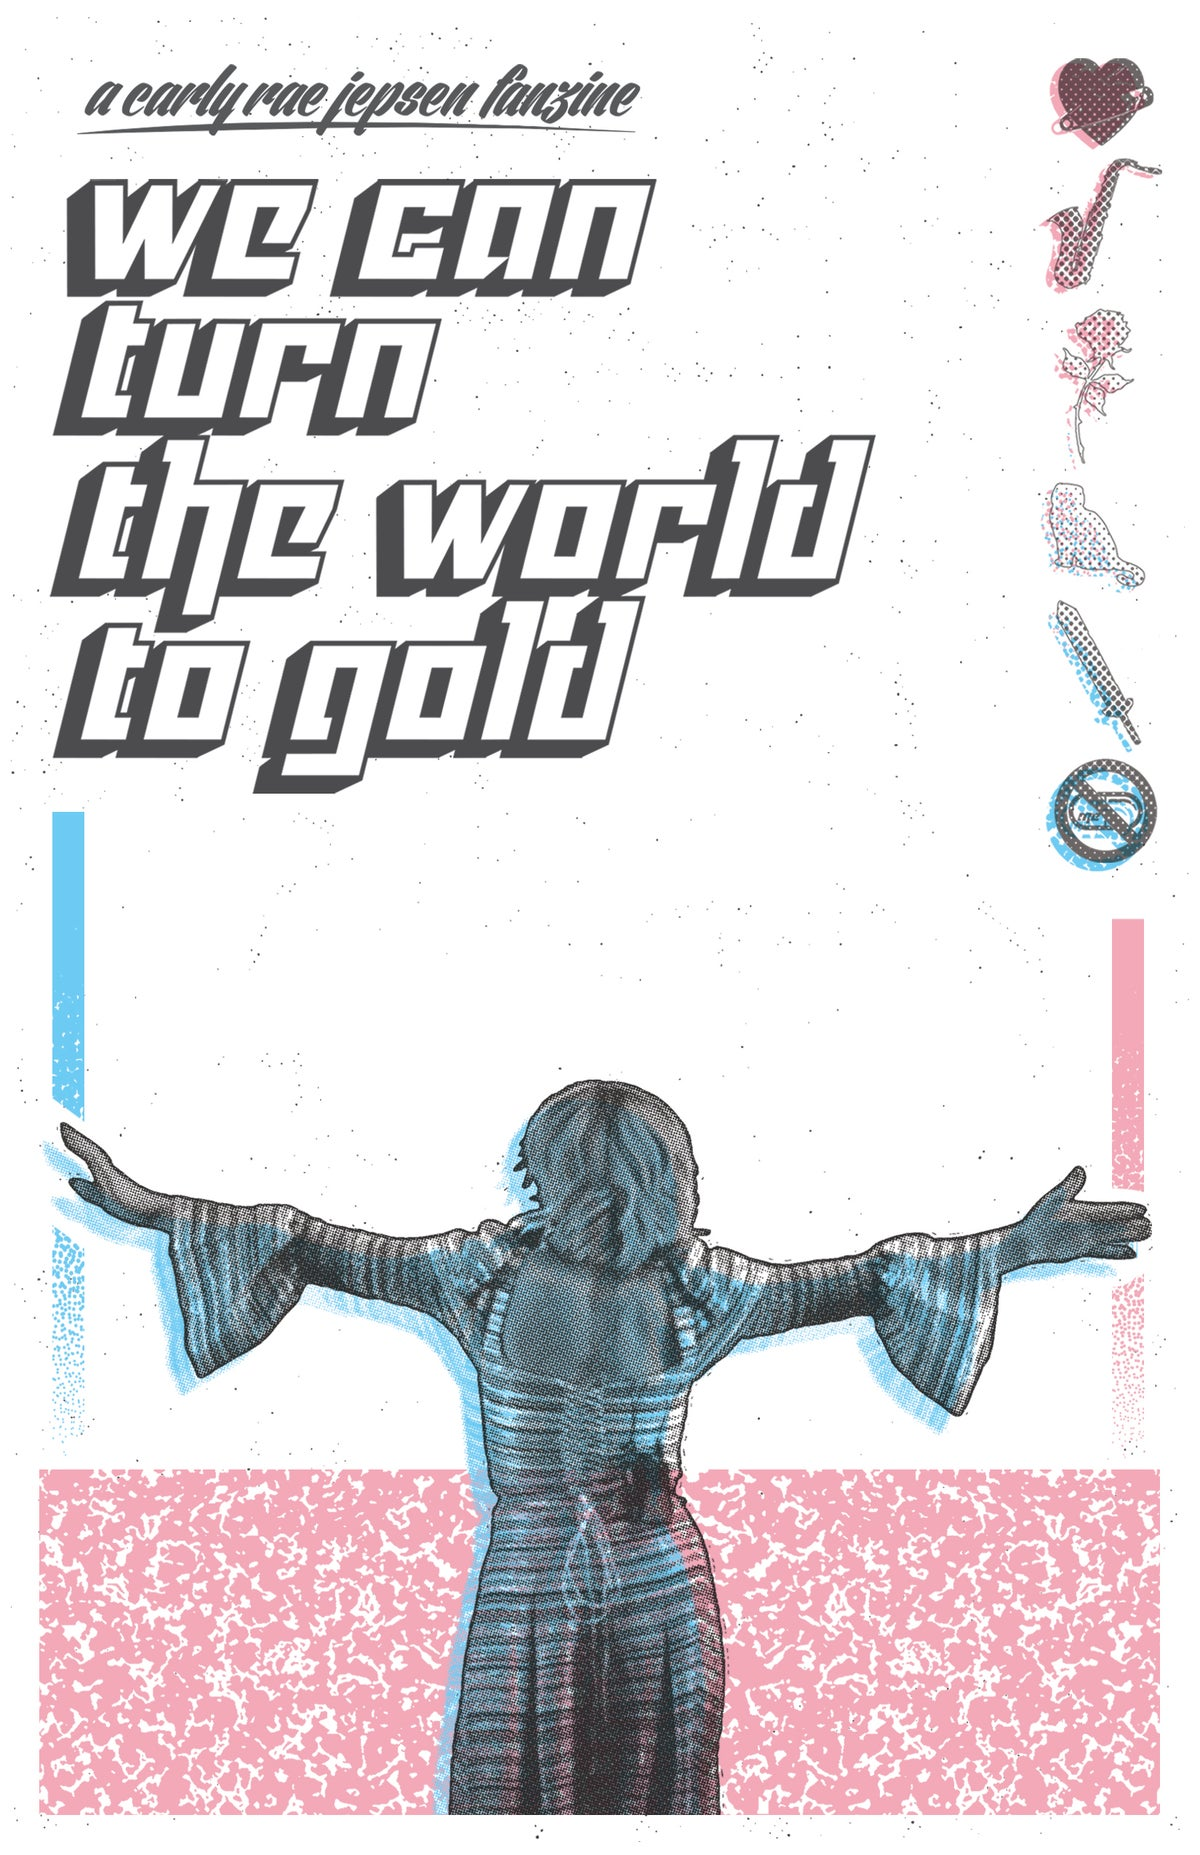 Image of We Can Turn the World To Gold: A Carly Rae Jepsen Fanzine